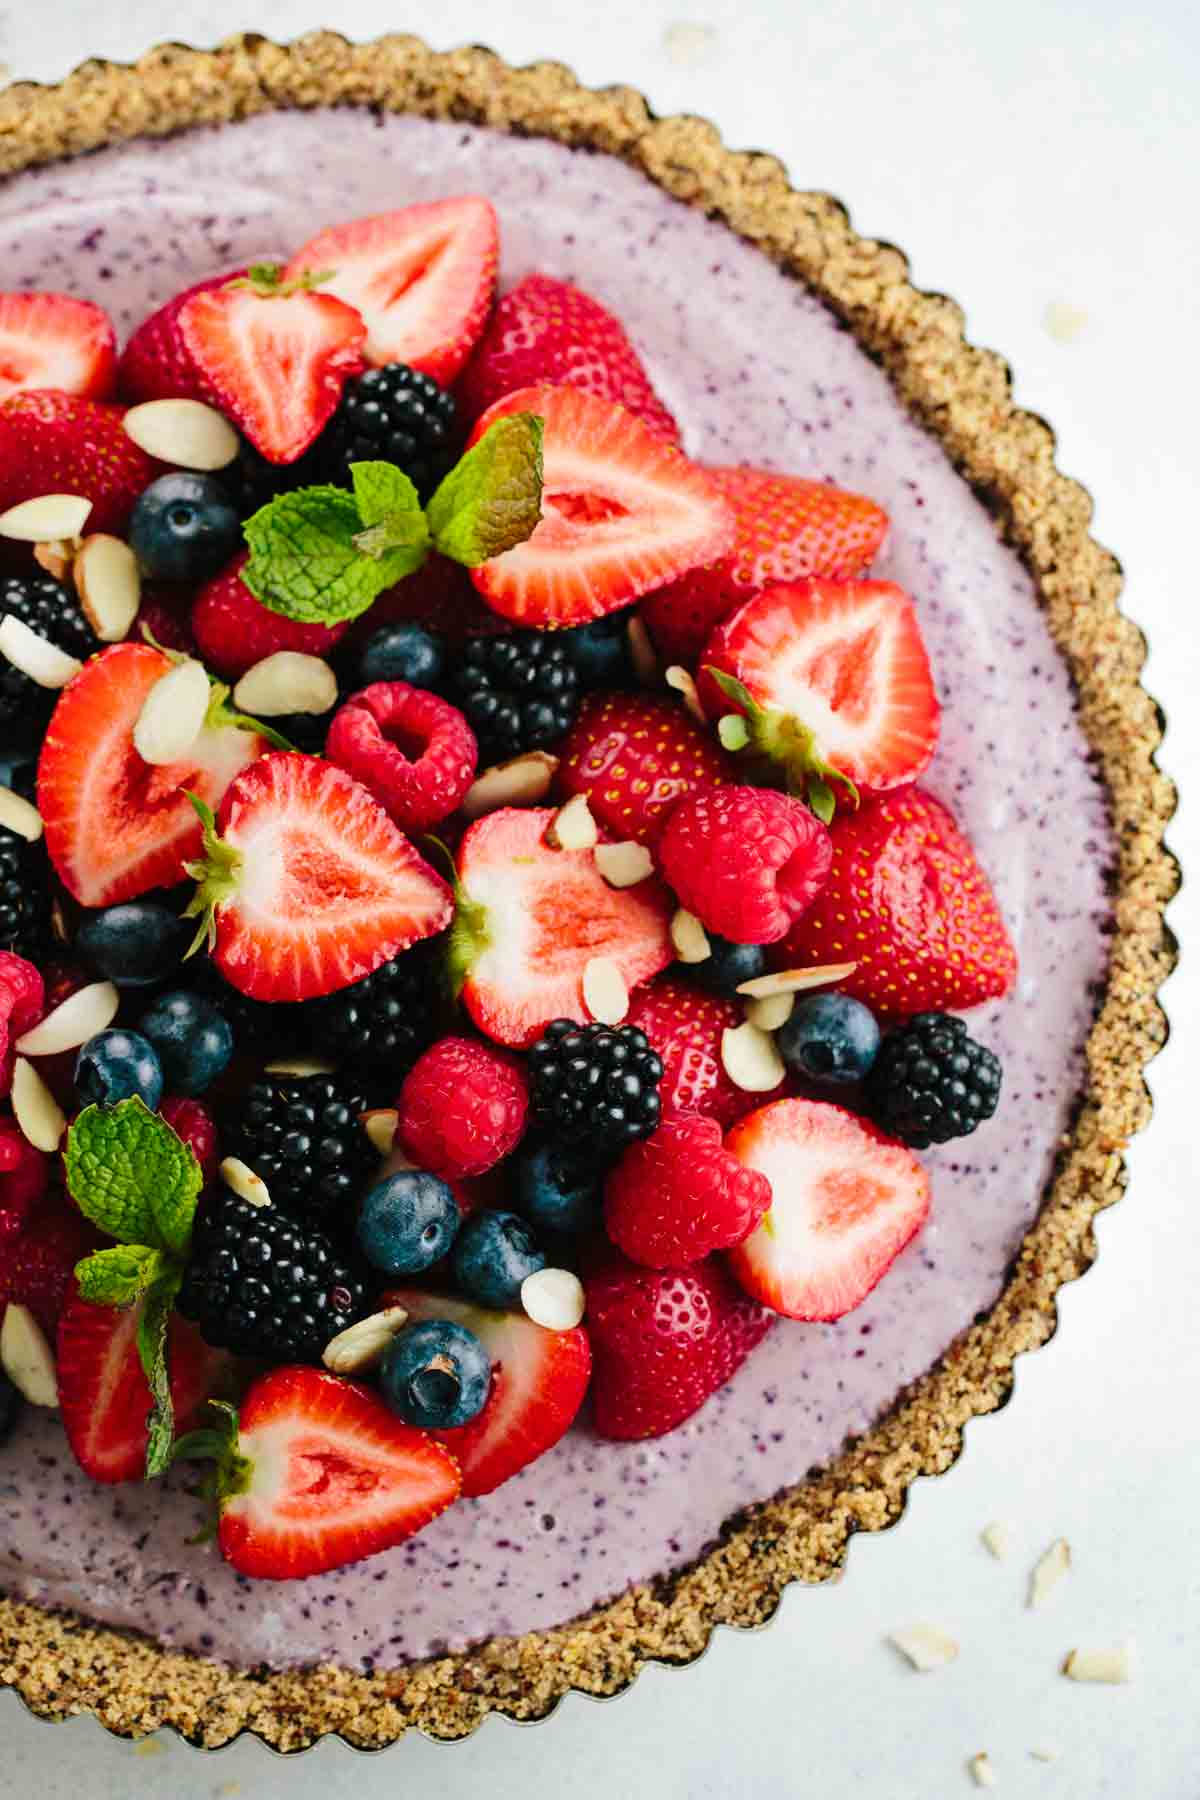 No Bake Blueberry Yogurt Tart Recipe - A wholesome and fun way to enjoy cereal for breakfast or as a healthier treat! | jessicagavin.com